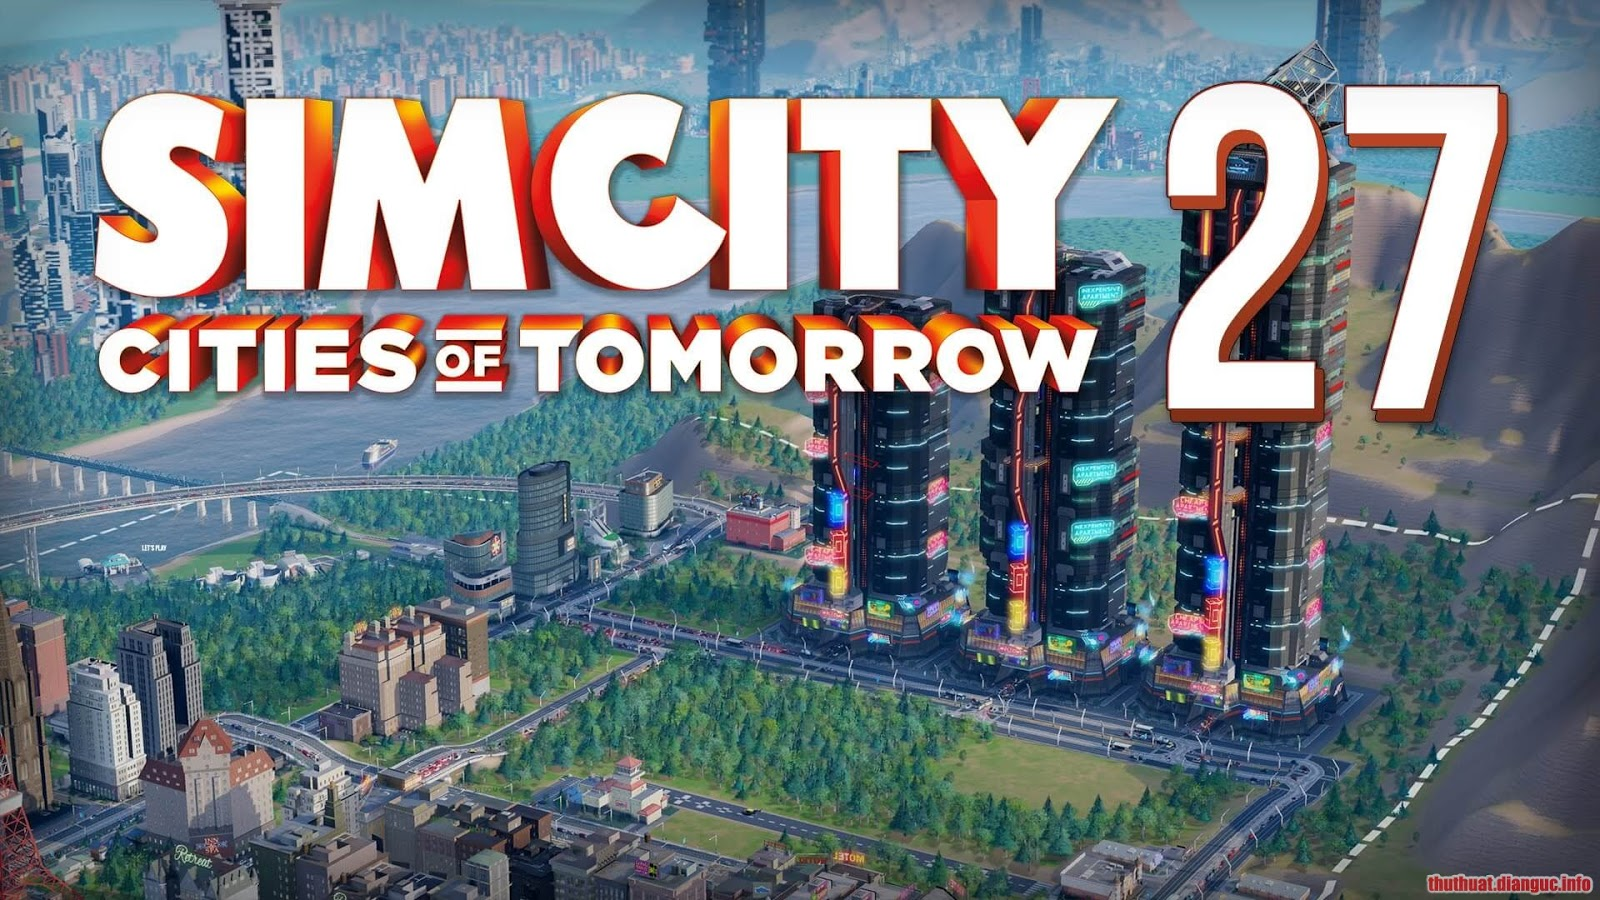 Download Game SimCity Deluxe Edition with Cites of Tomorrow 2014 Full Crack